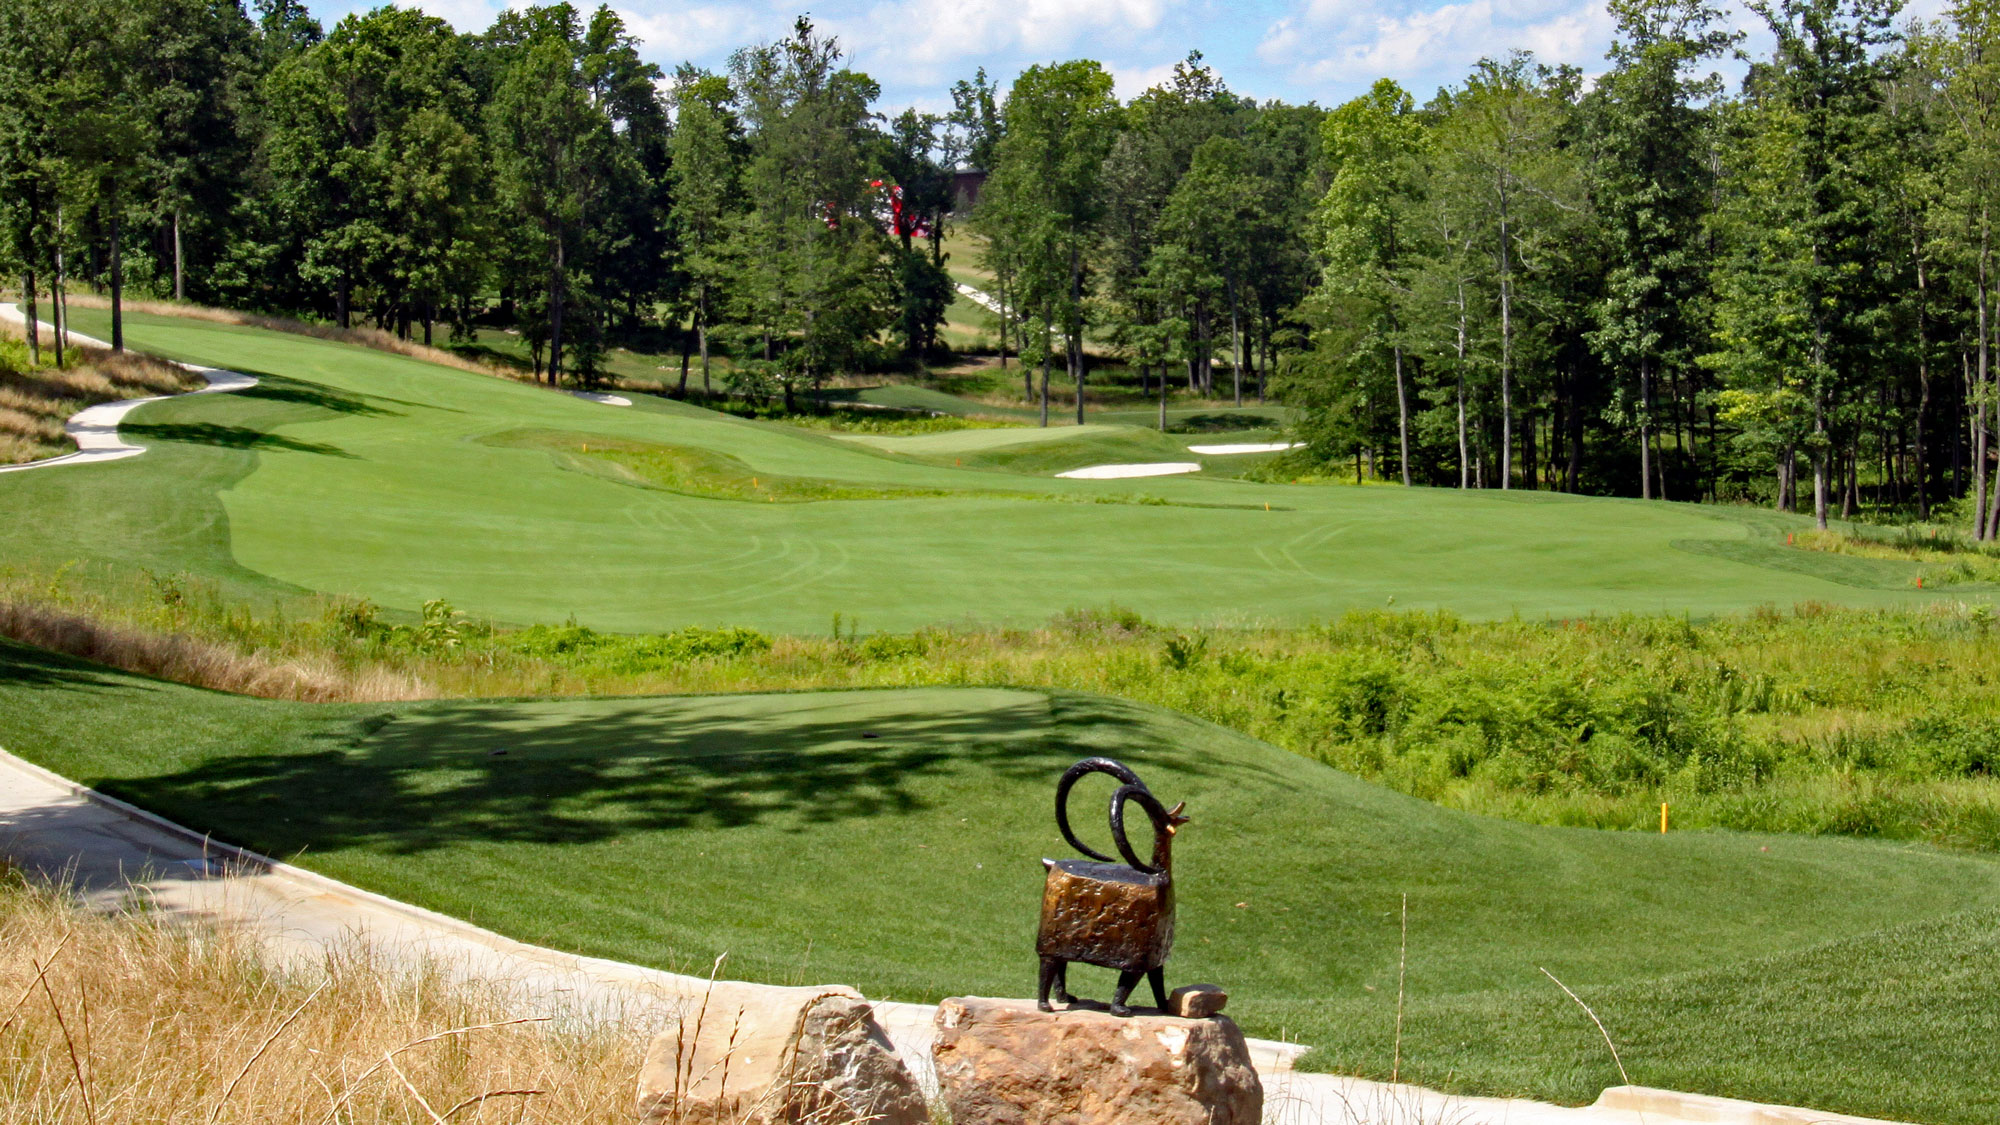 Pete Dye's Shepherd's Rock hole 10 with sheep statue in front